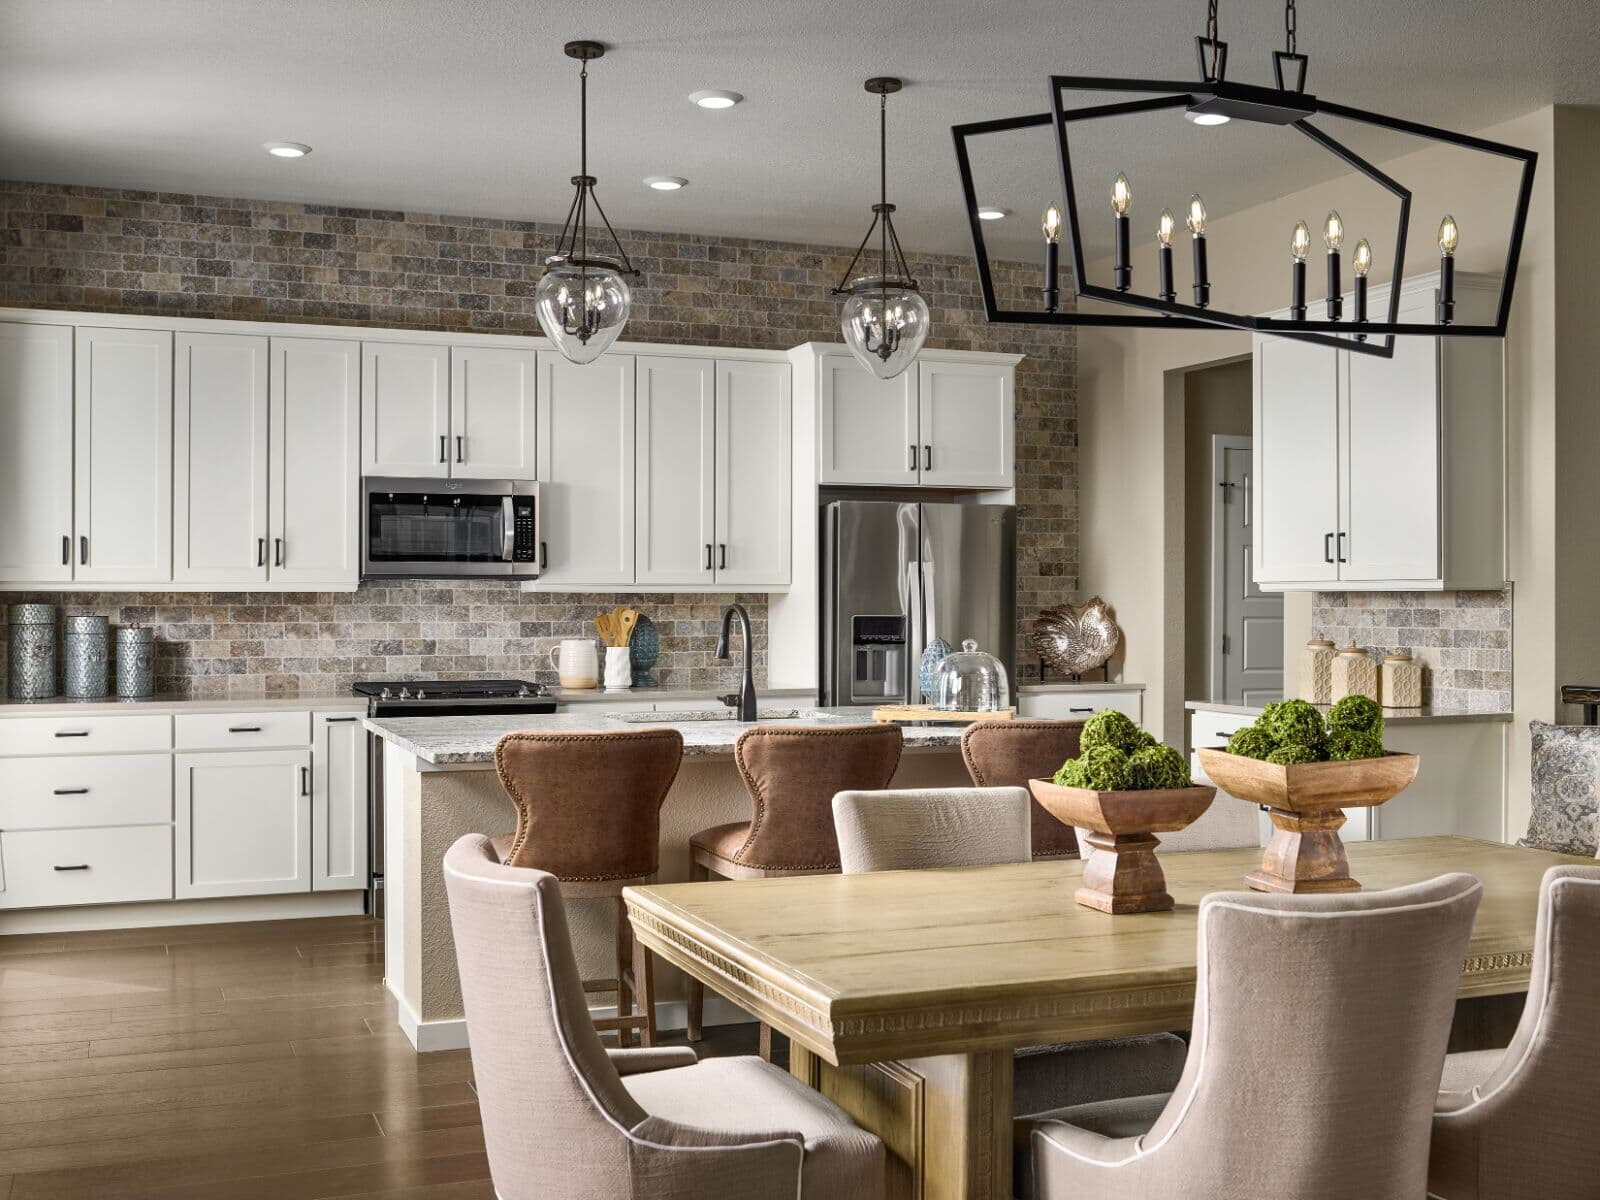 Ovation-Two-Kitchen-Barefoot-Lakes-Denver-Colorado